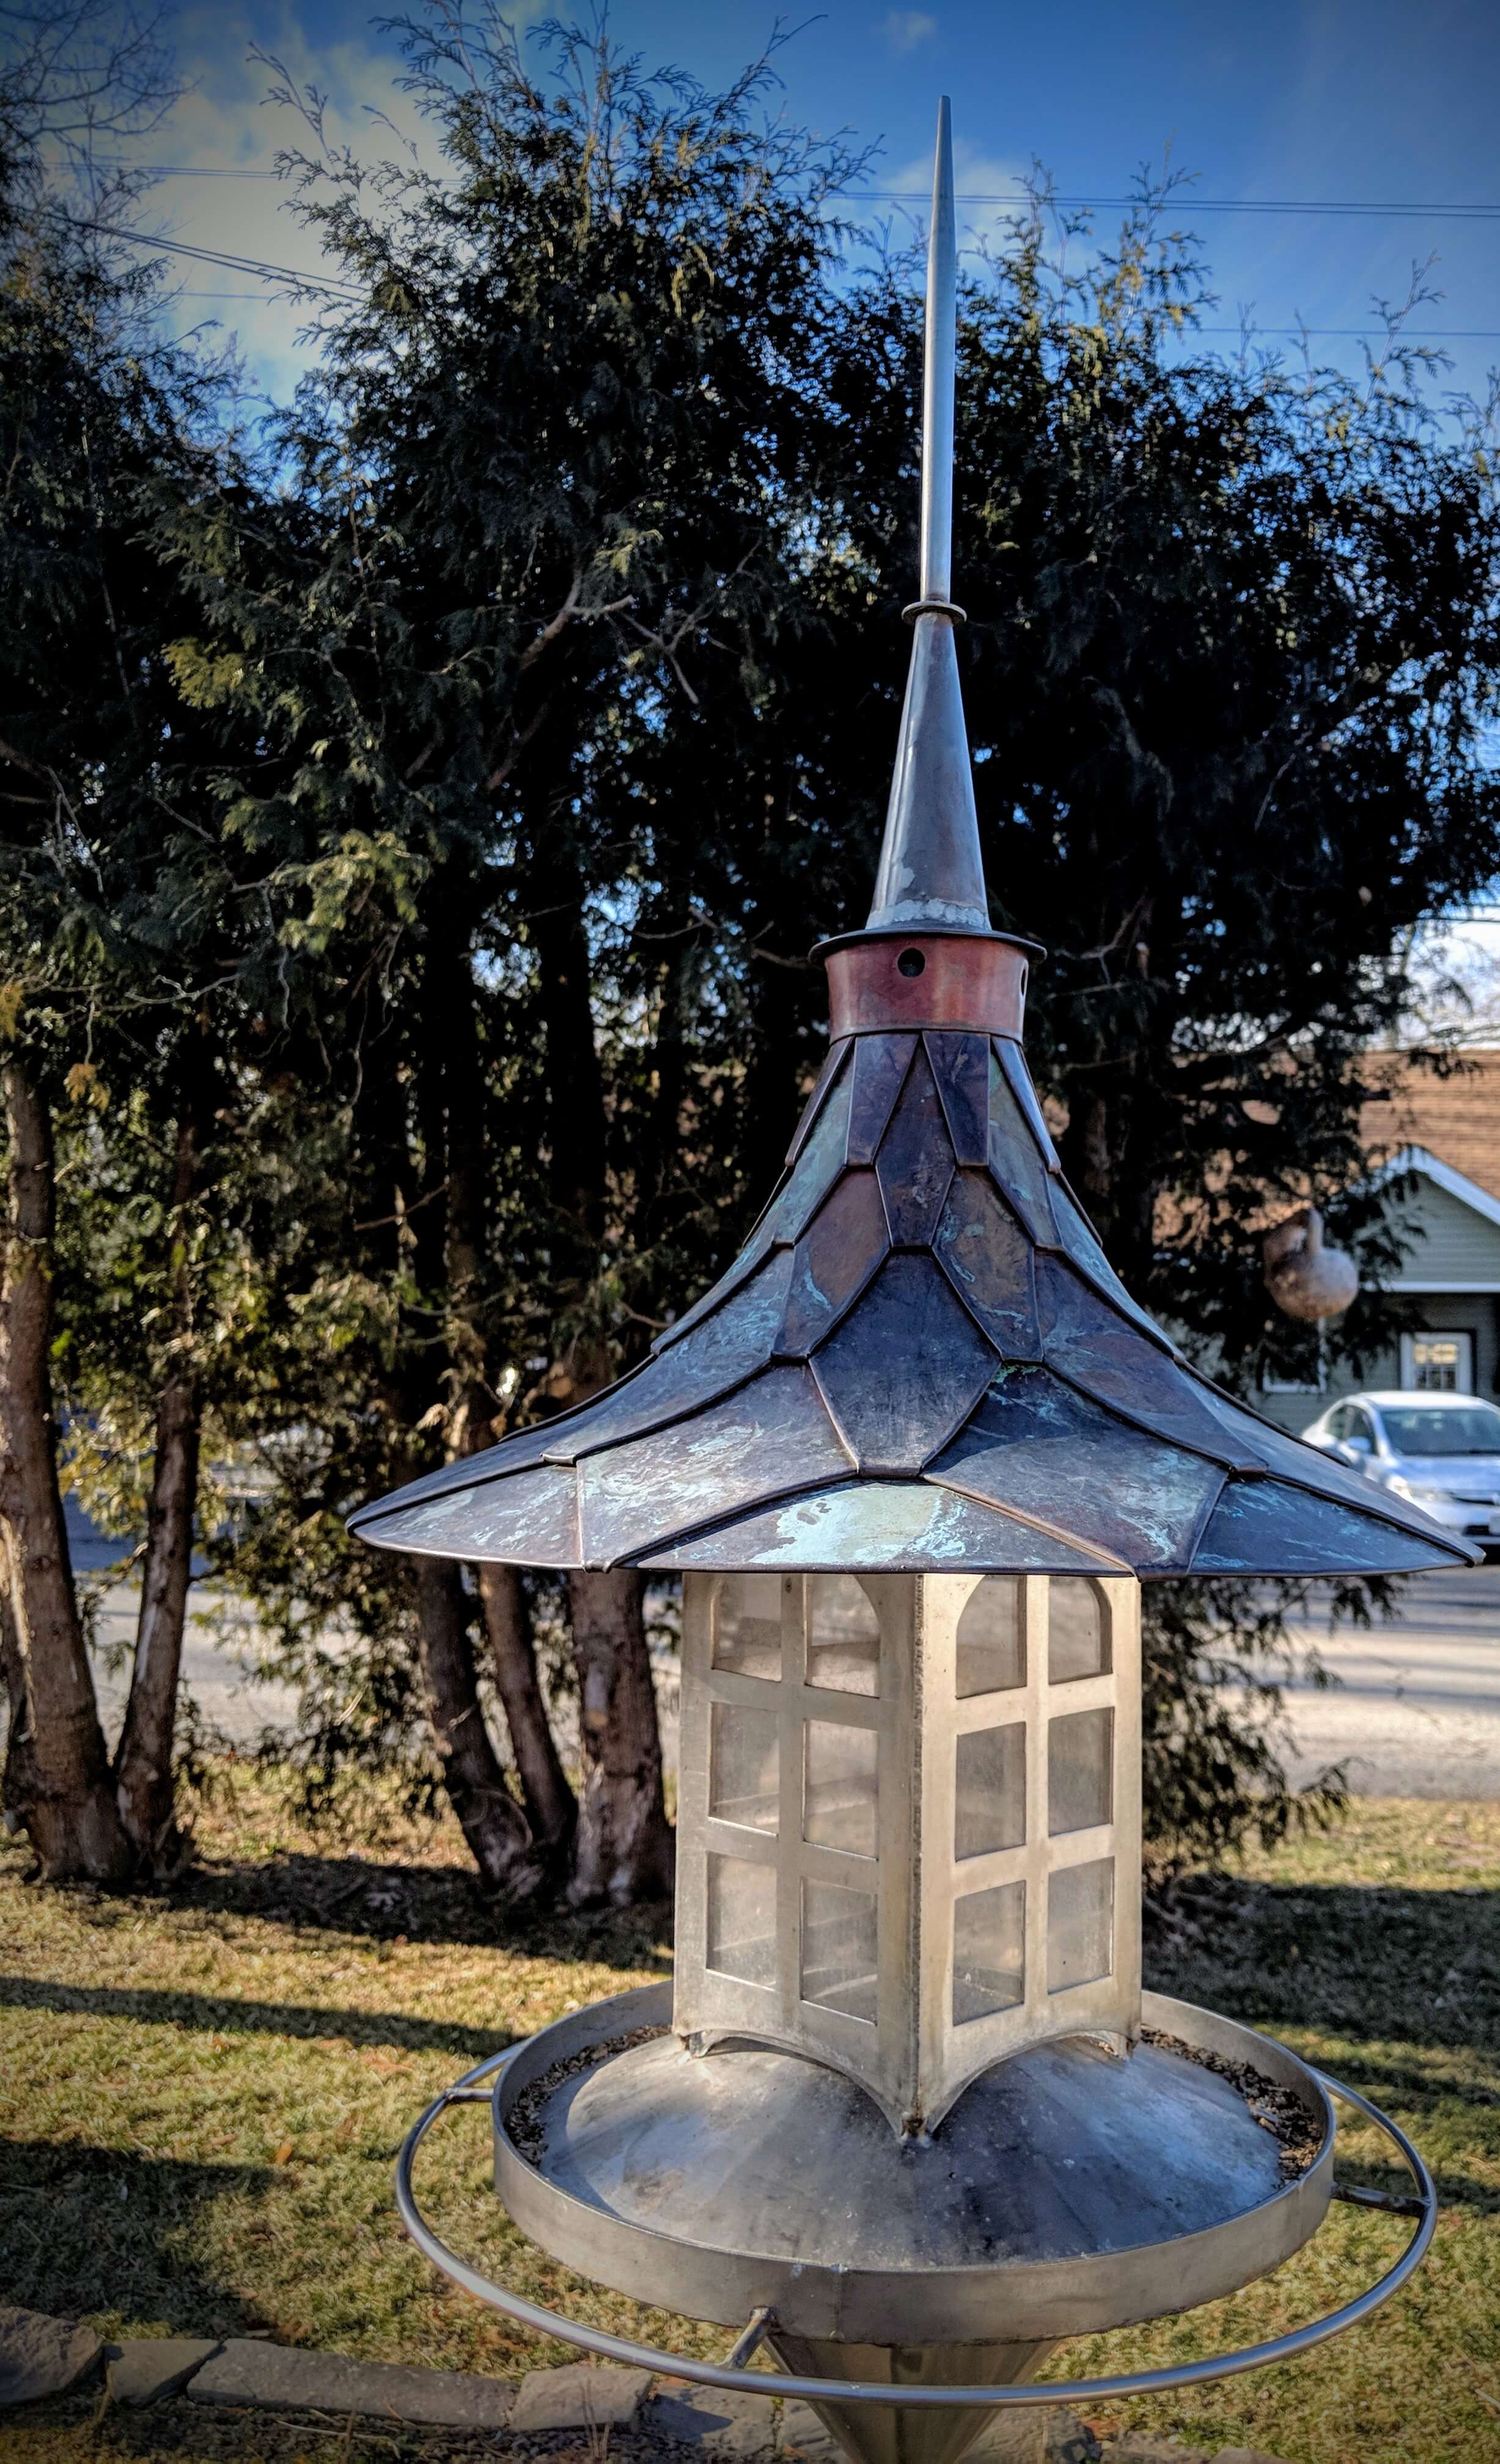 Iron Rose Gallery by John Mocioi: Birdhouse. handcrafted metal birdhouse